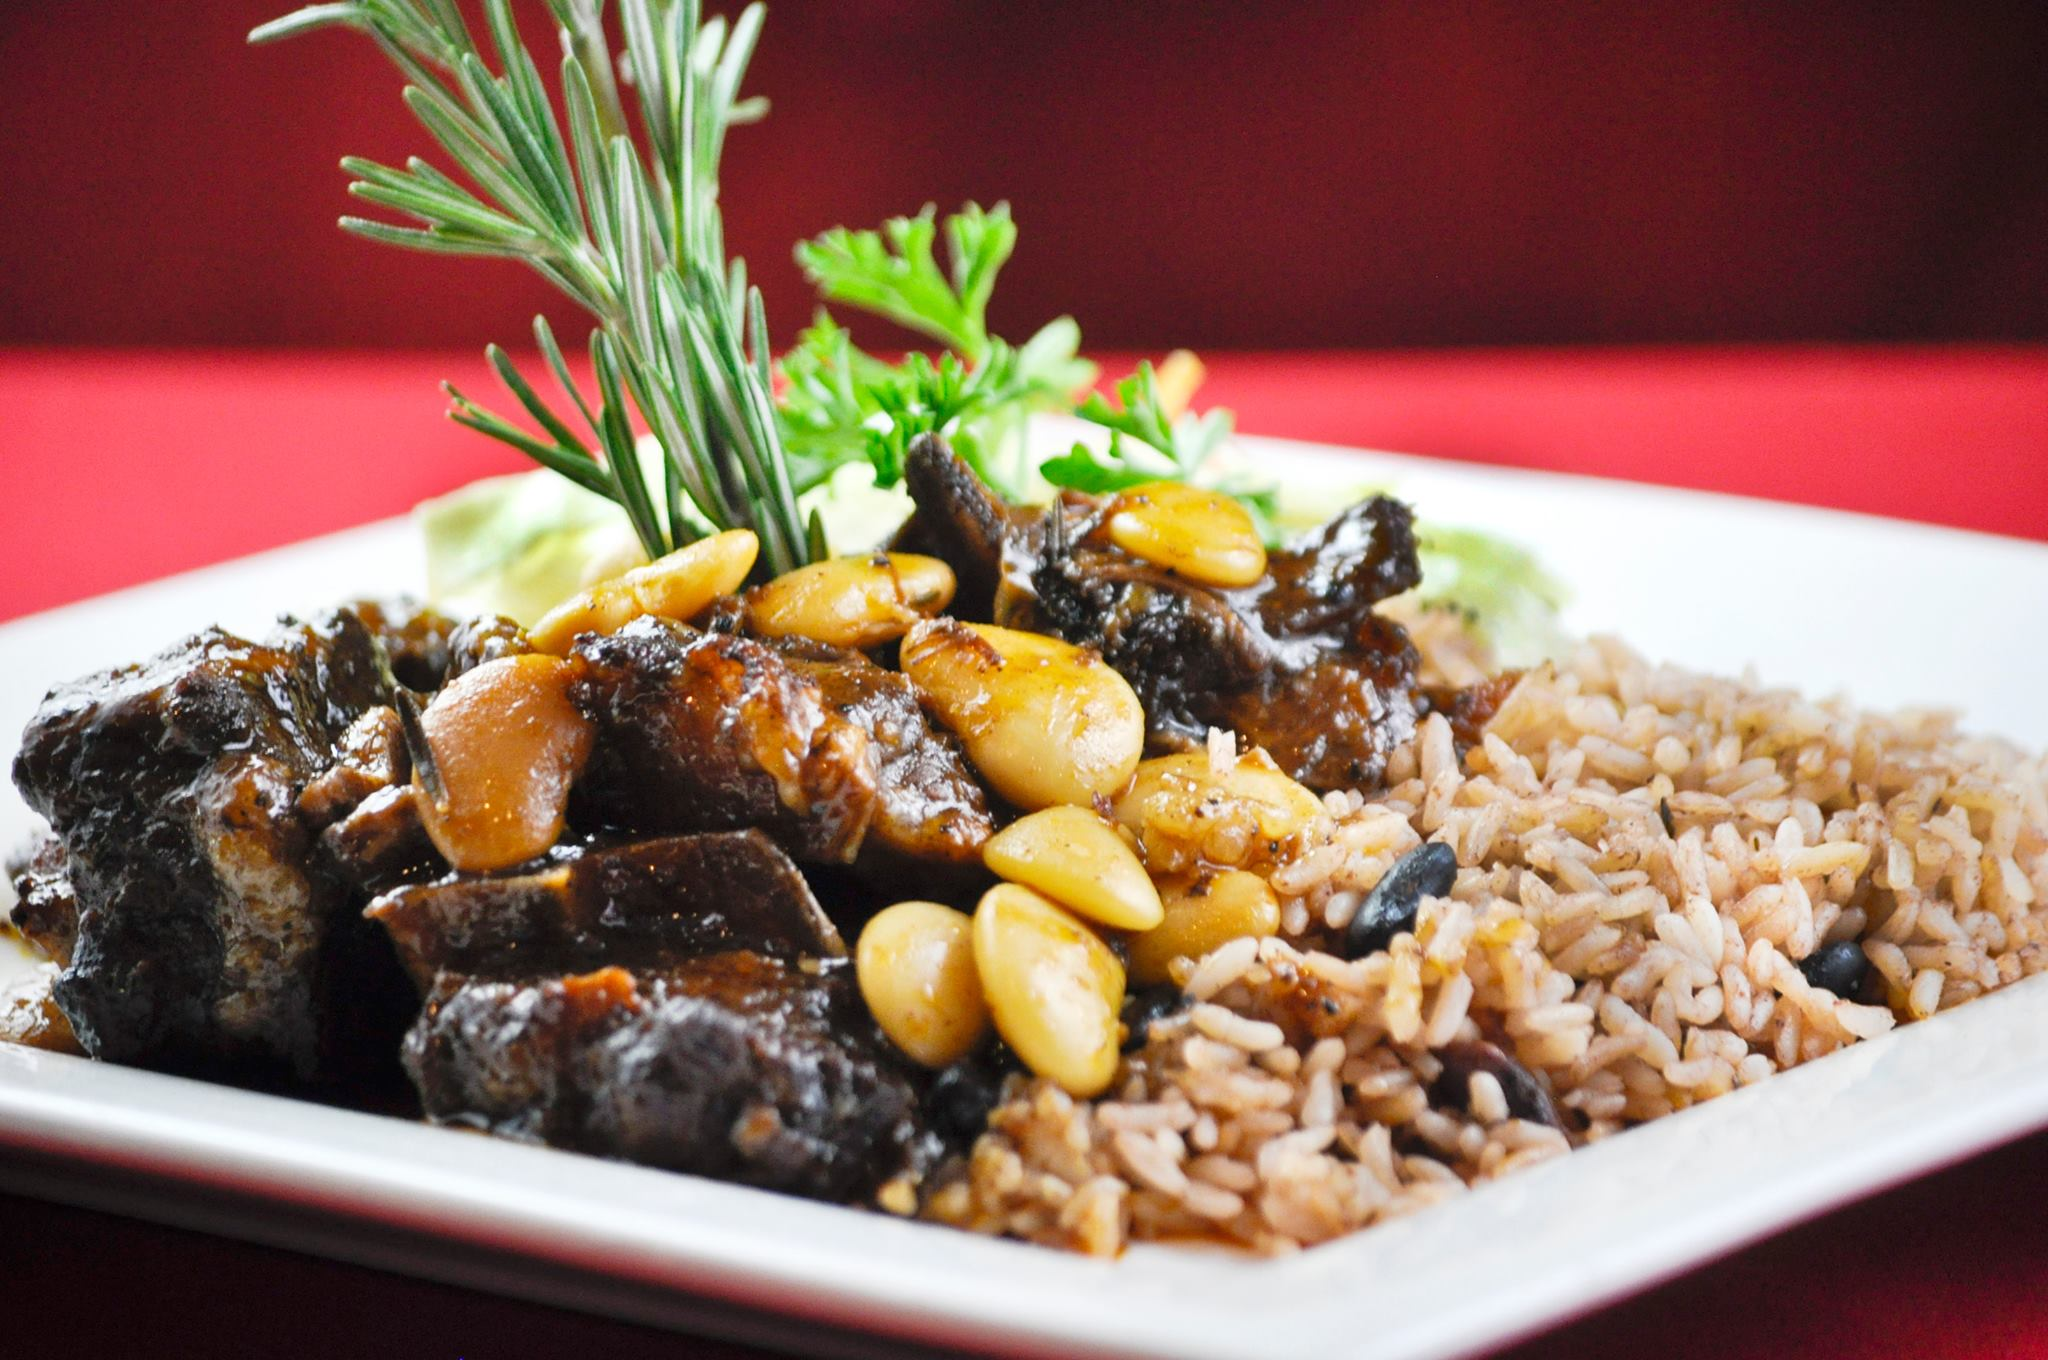 A white platter with braised oxtails, sprig of rosemary, vegetables, seasoned rice, and peas